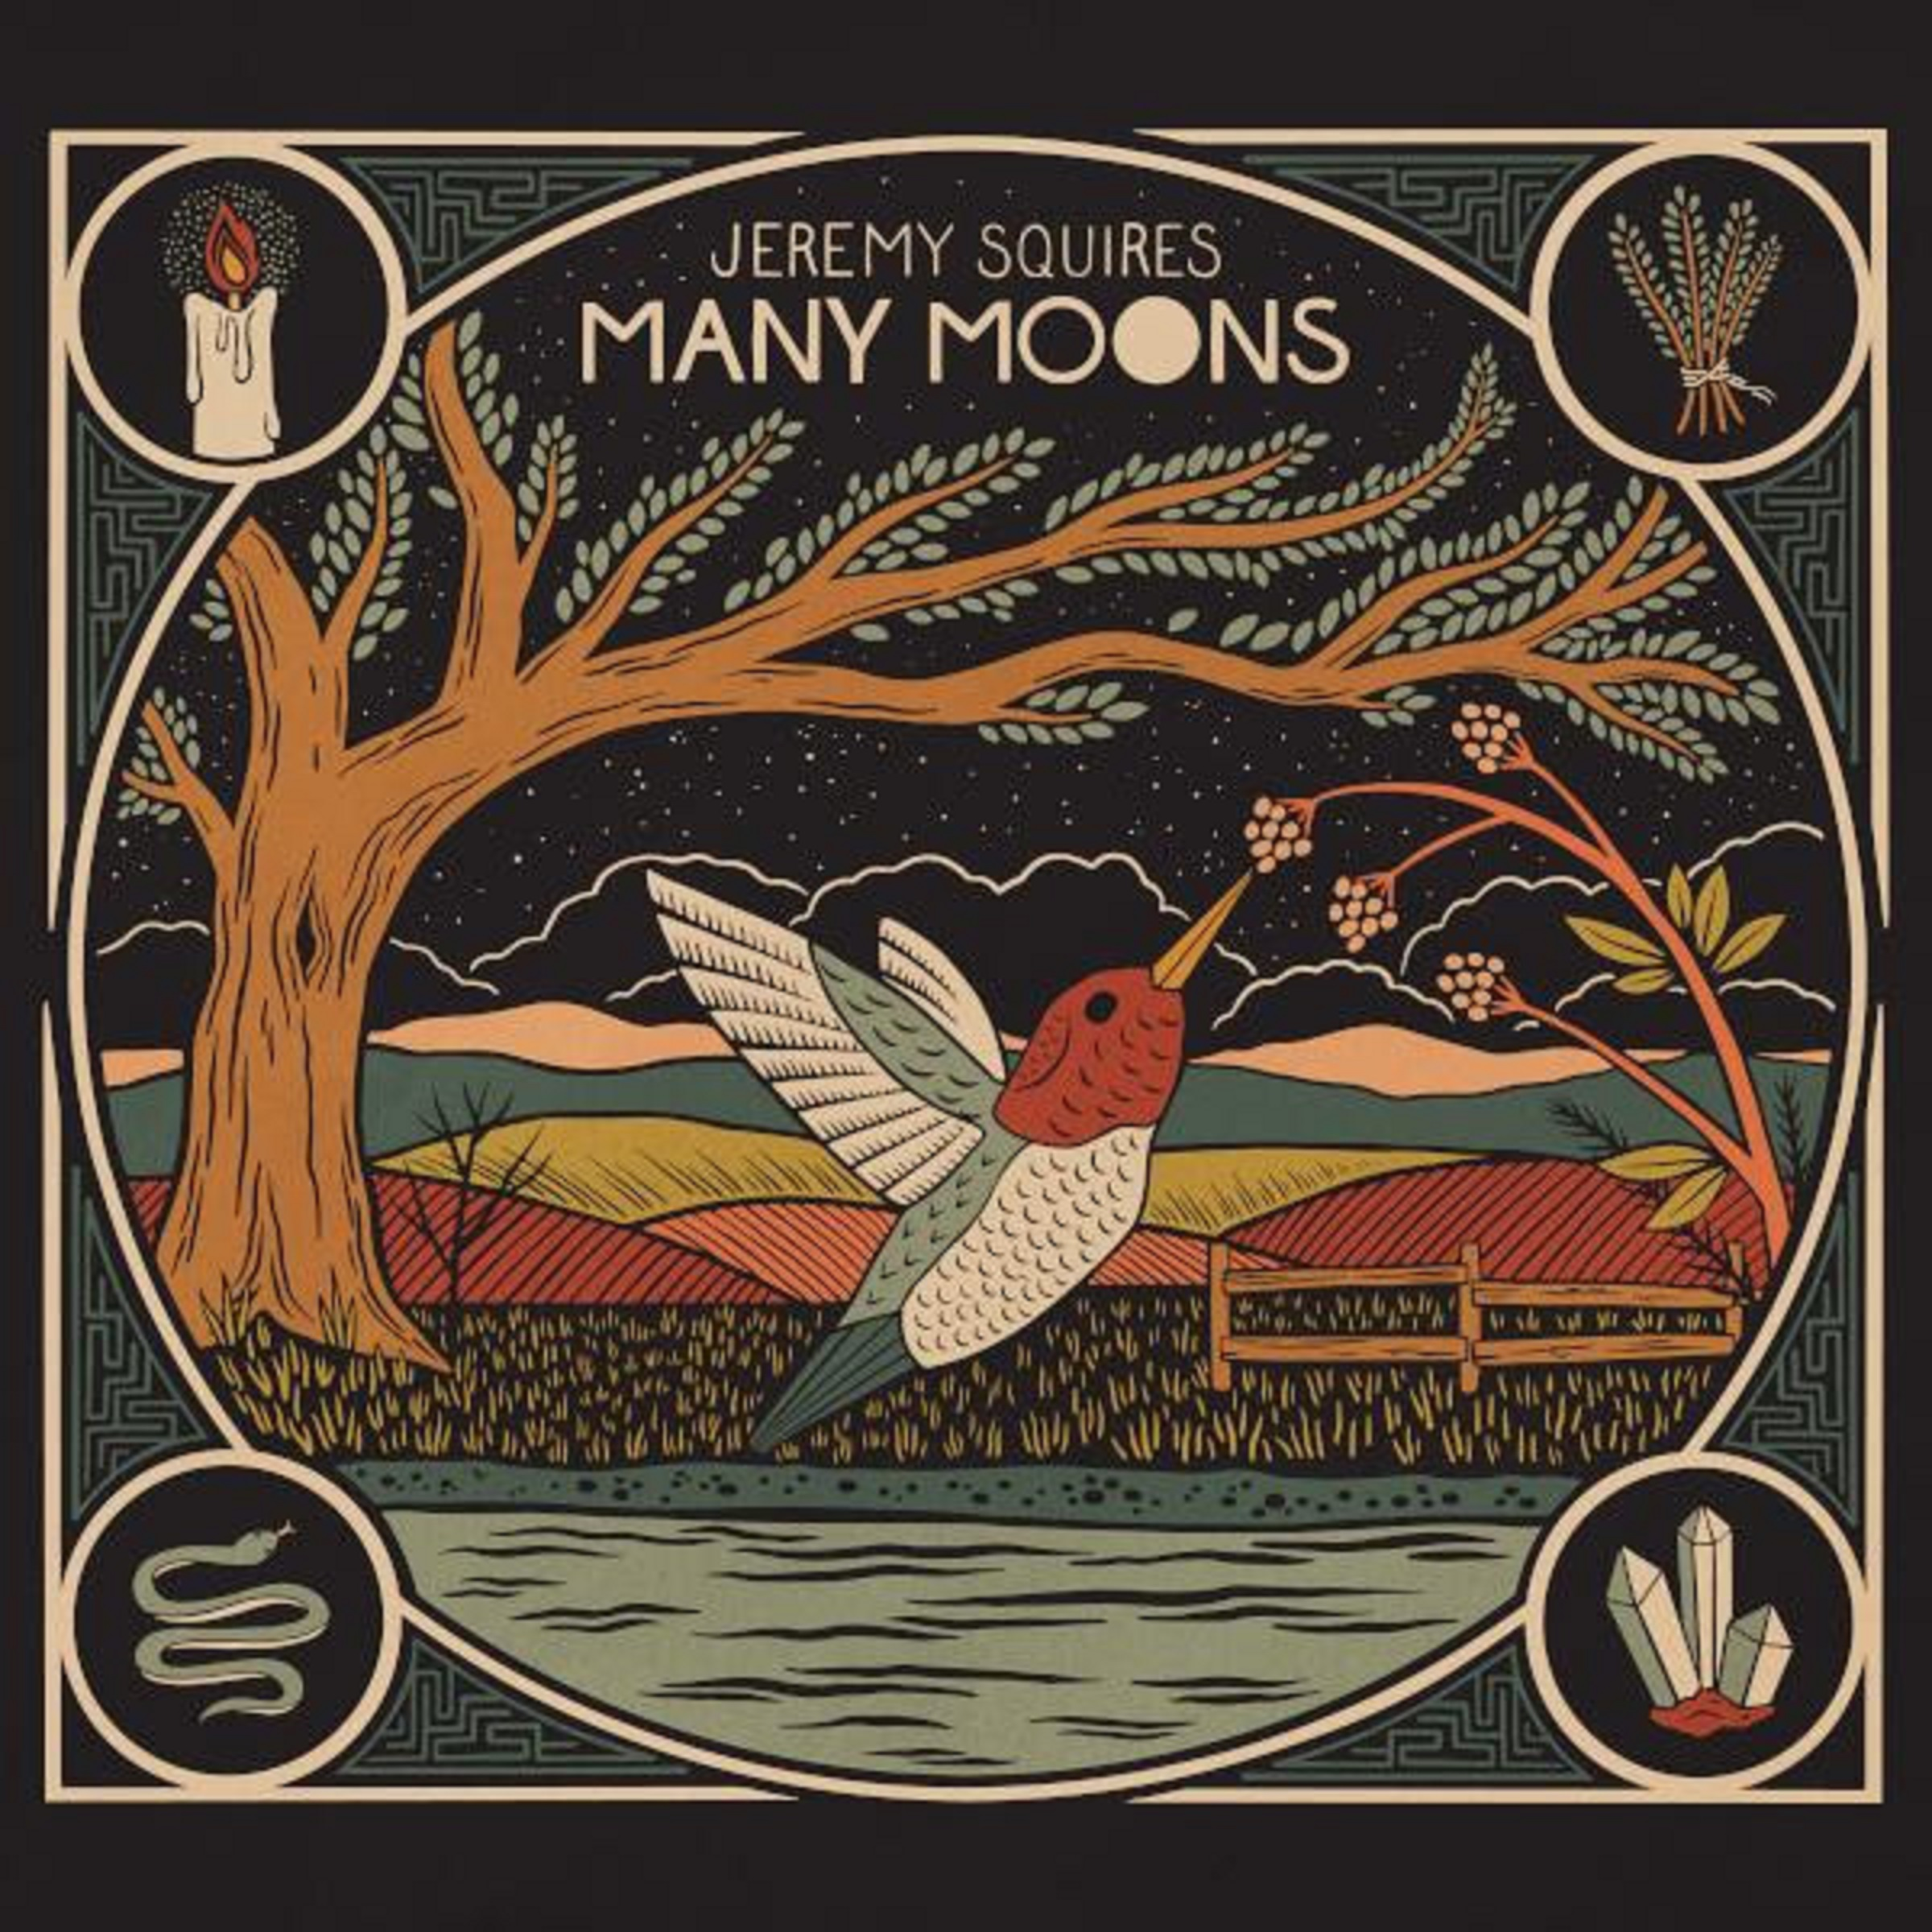 Jeremy Squires 'Many Moons' Due Friday 8/28